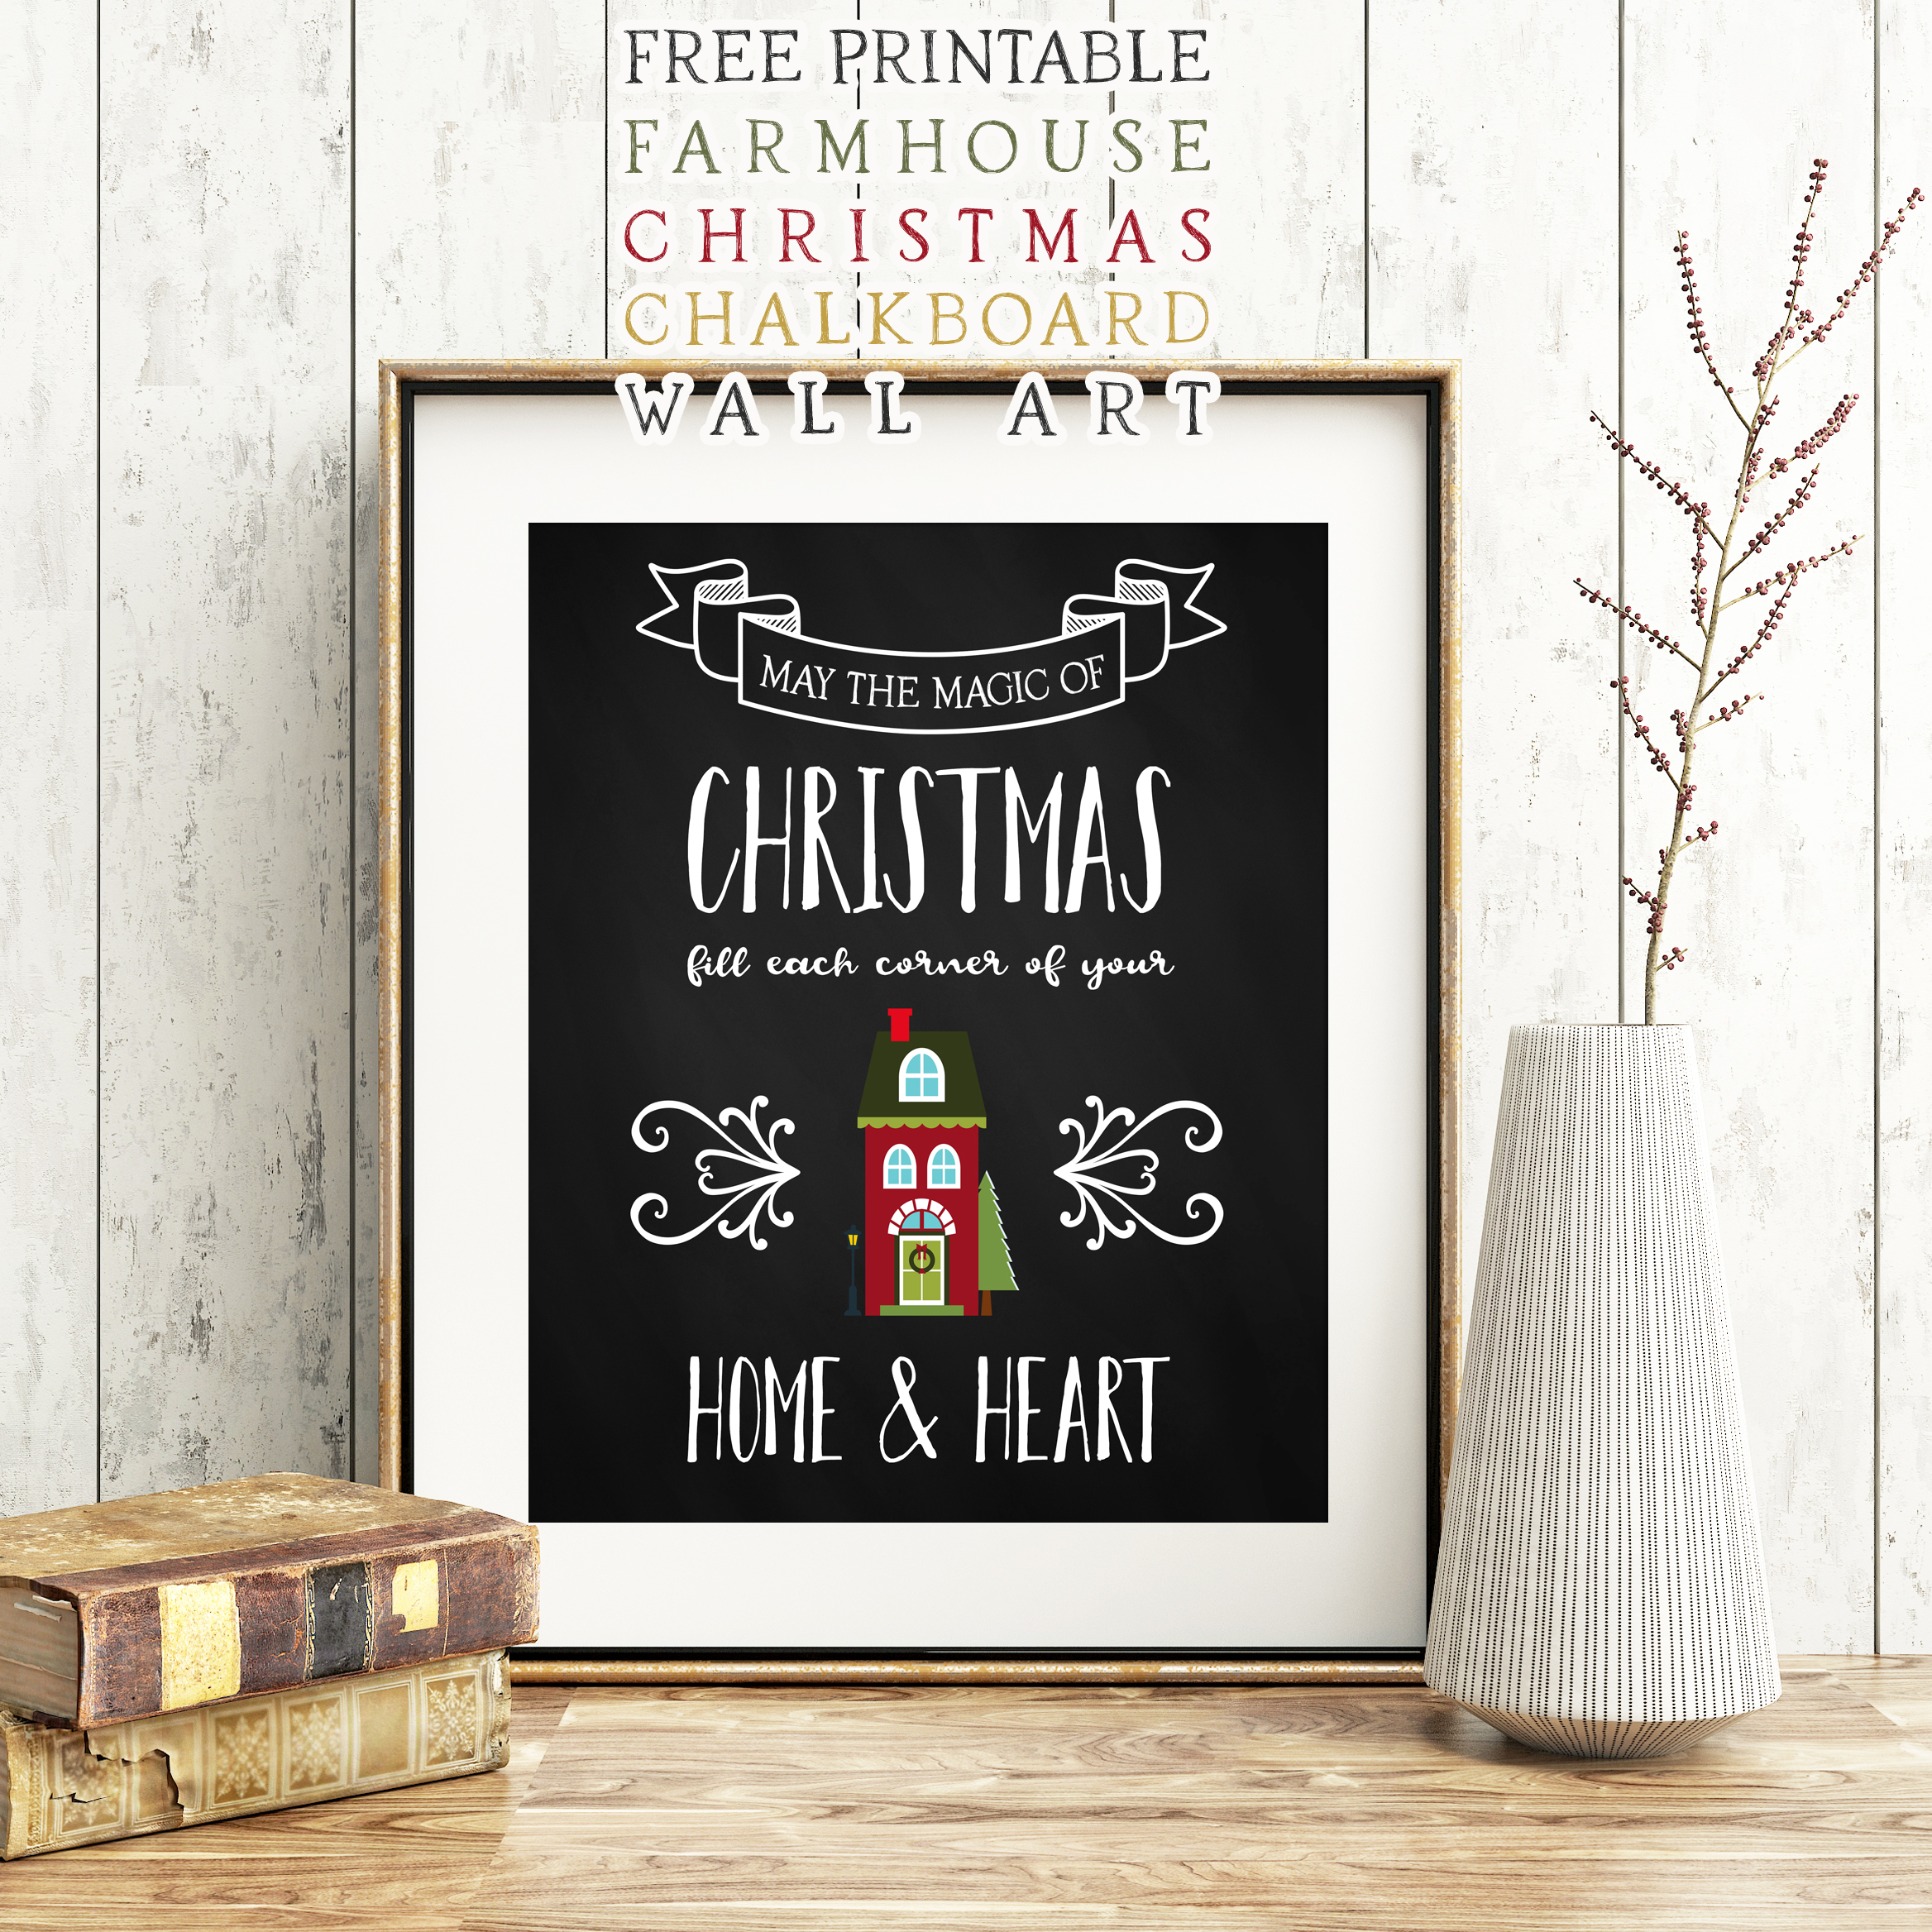 Ikea Pets Free Printable Farmhouse Christmas Chalkboard Wall Art